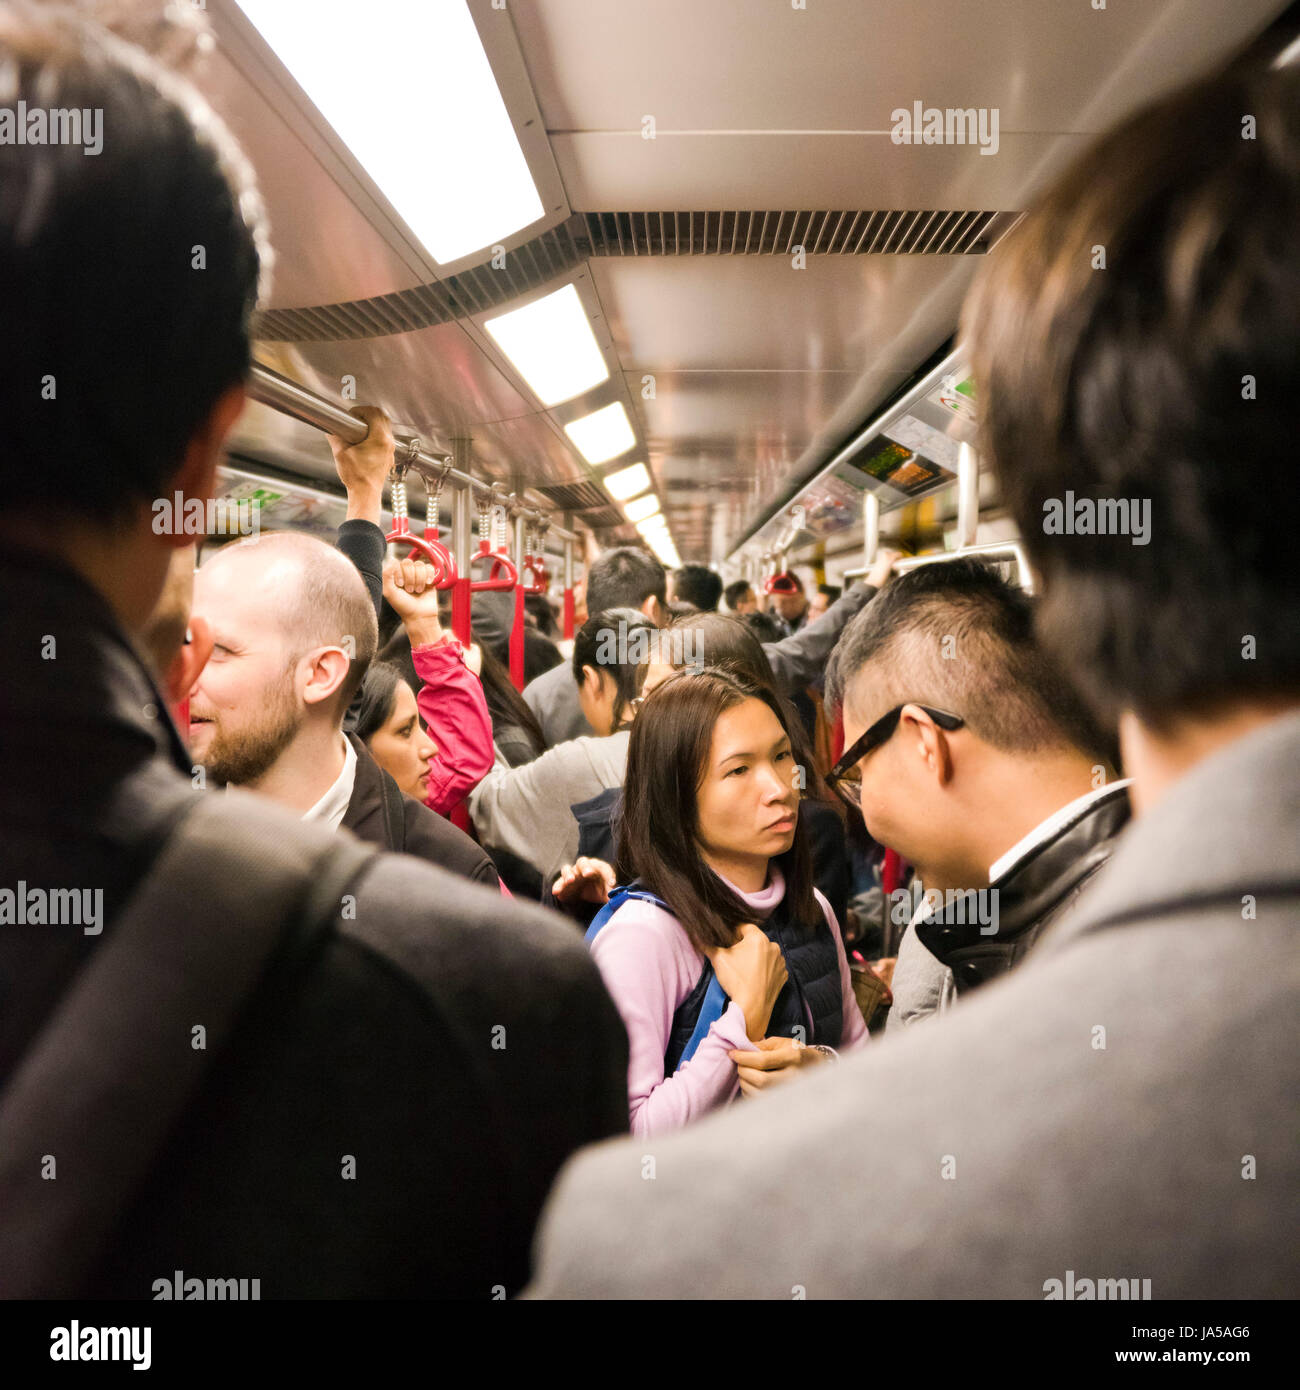 Square view of passengers inside the MTR, mass transit railway, in Hong Kong, China. - Stock Image